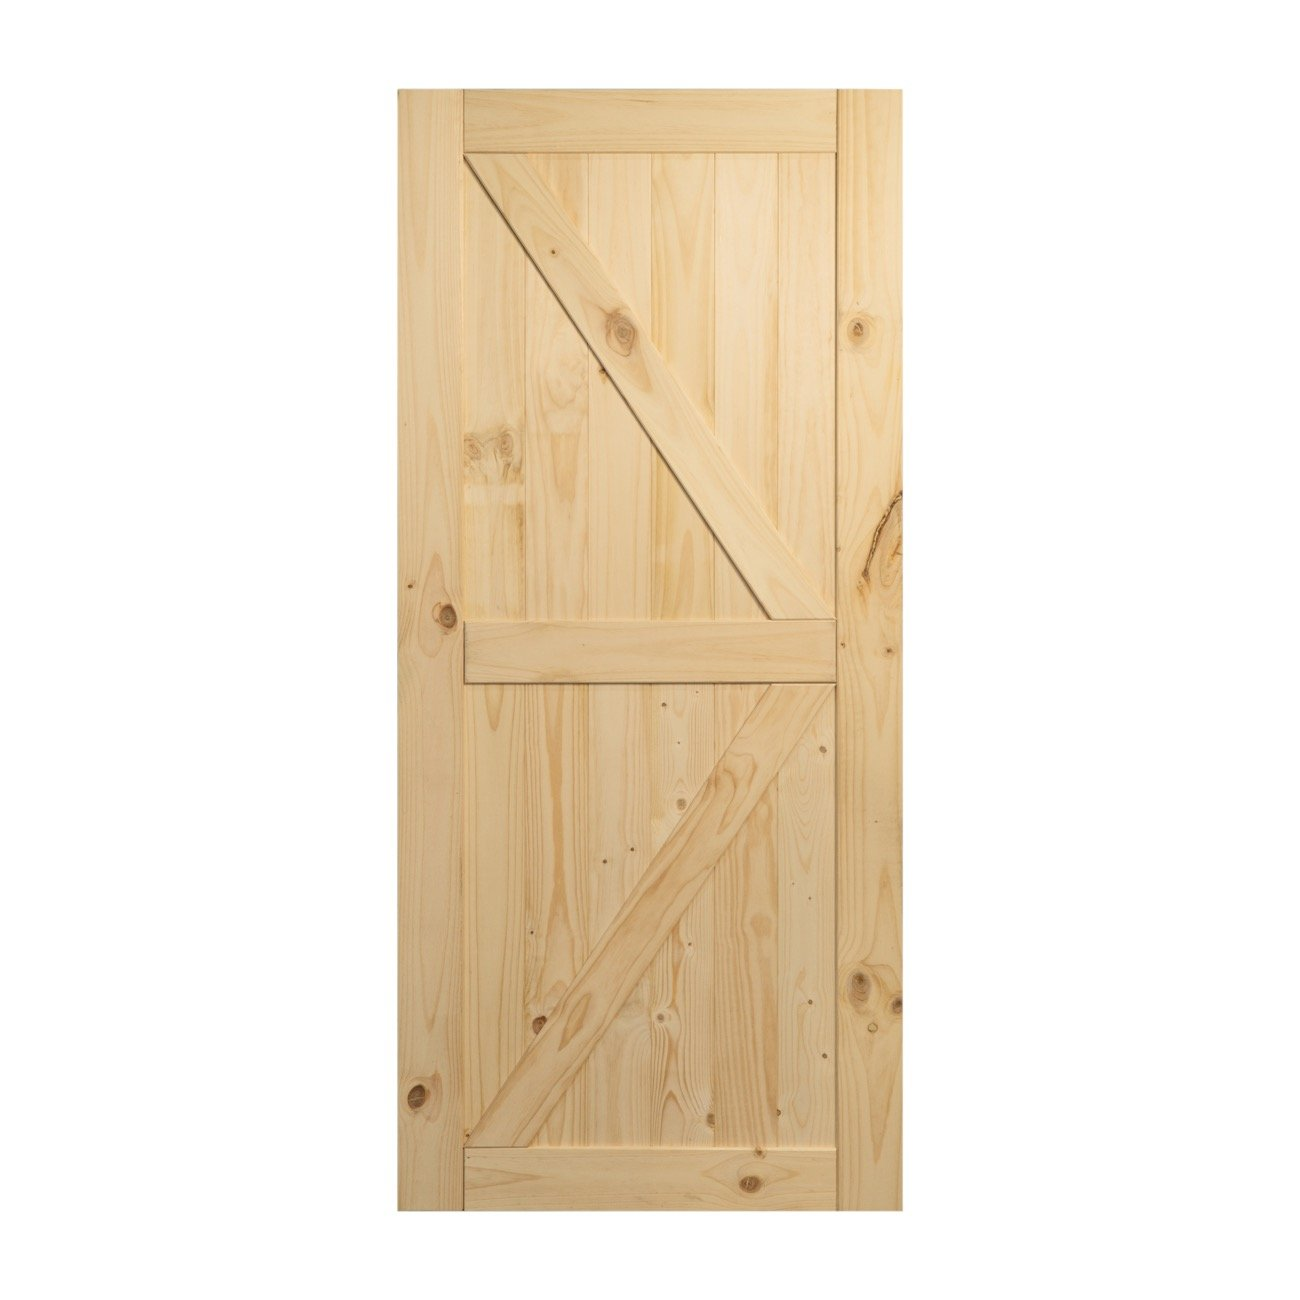 Amazon.com BELLEZE 36in x 84in Sliding Barn Wood Door Unfinished Knotty Pine Single Door Only Pre Drilled (3 ft X 7 ft) Interior Natural Home Improvement  sc 1 st  Amazon.com & Amazon.com: BELLEZE 36in x 84in Sliding Barn Wood Door Unfinished ...